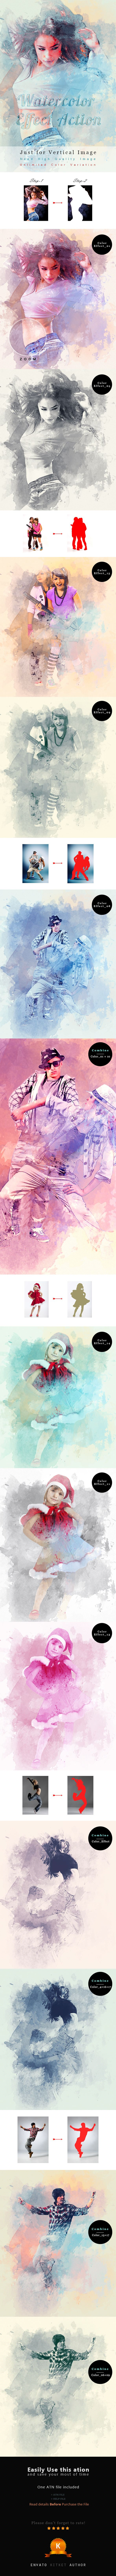 Watercolor Effect Photoshop Action. Download here: http://graphicriver.net/item/watercolor-effect-action/15238632?ref=ksioks